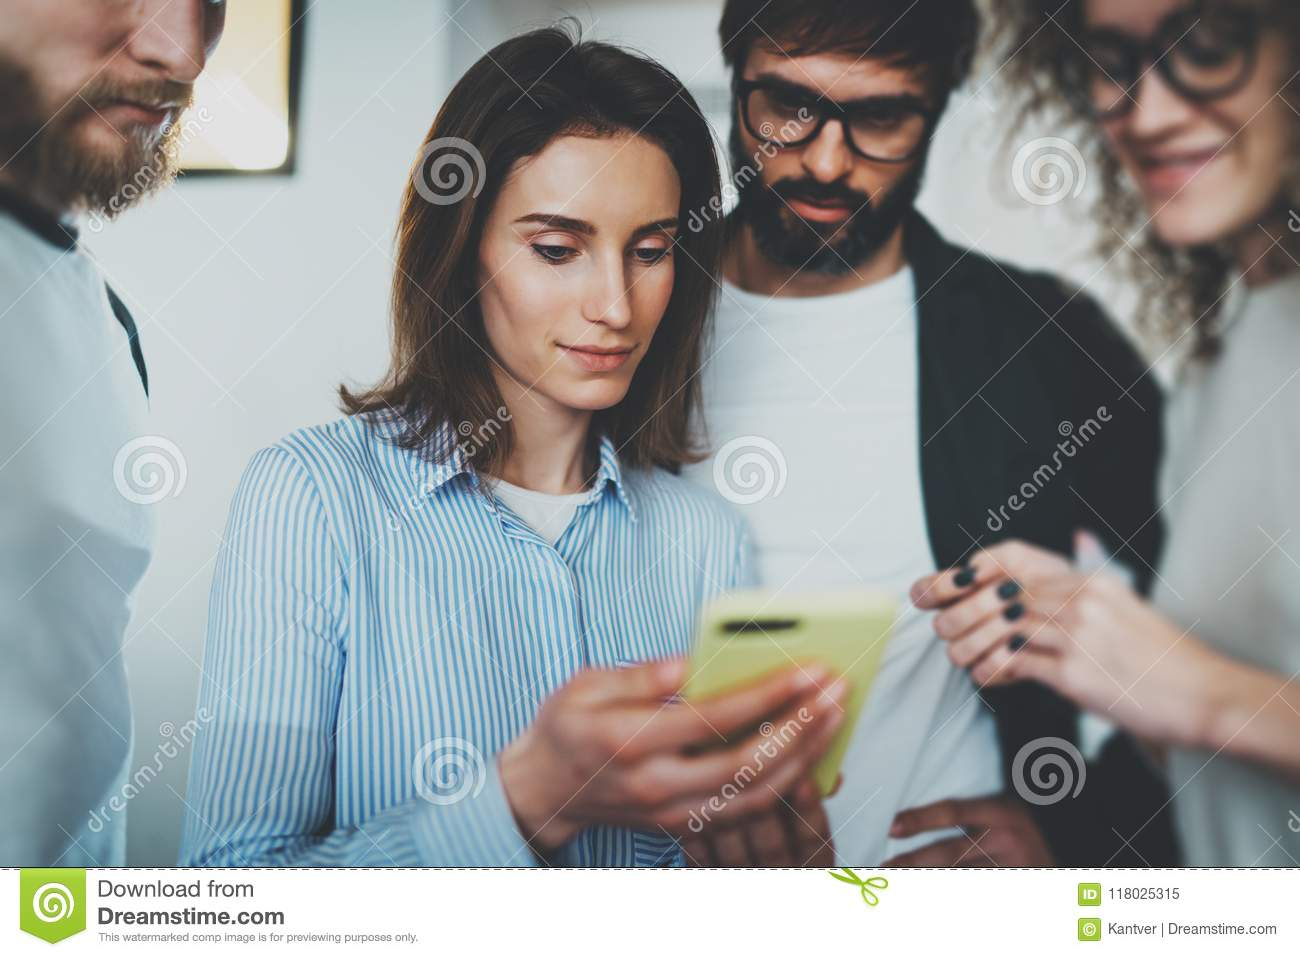 Coworkers business meeting concept.Young women holding mobile smartphone hand and showing information to her colleagues